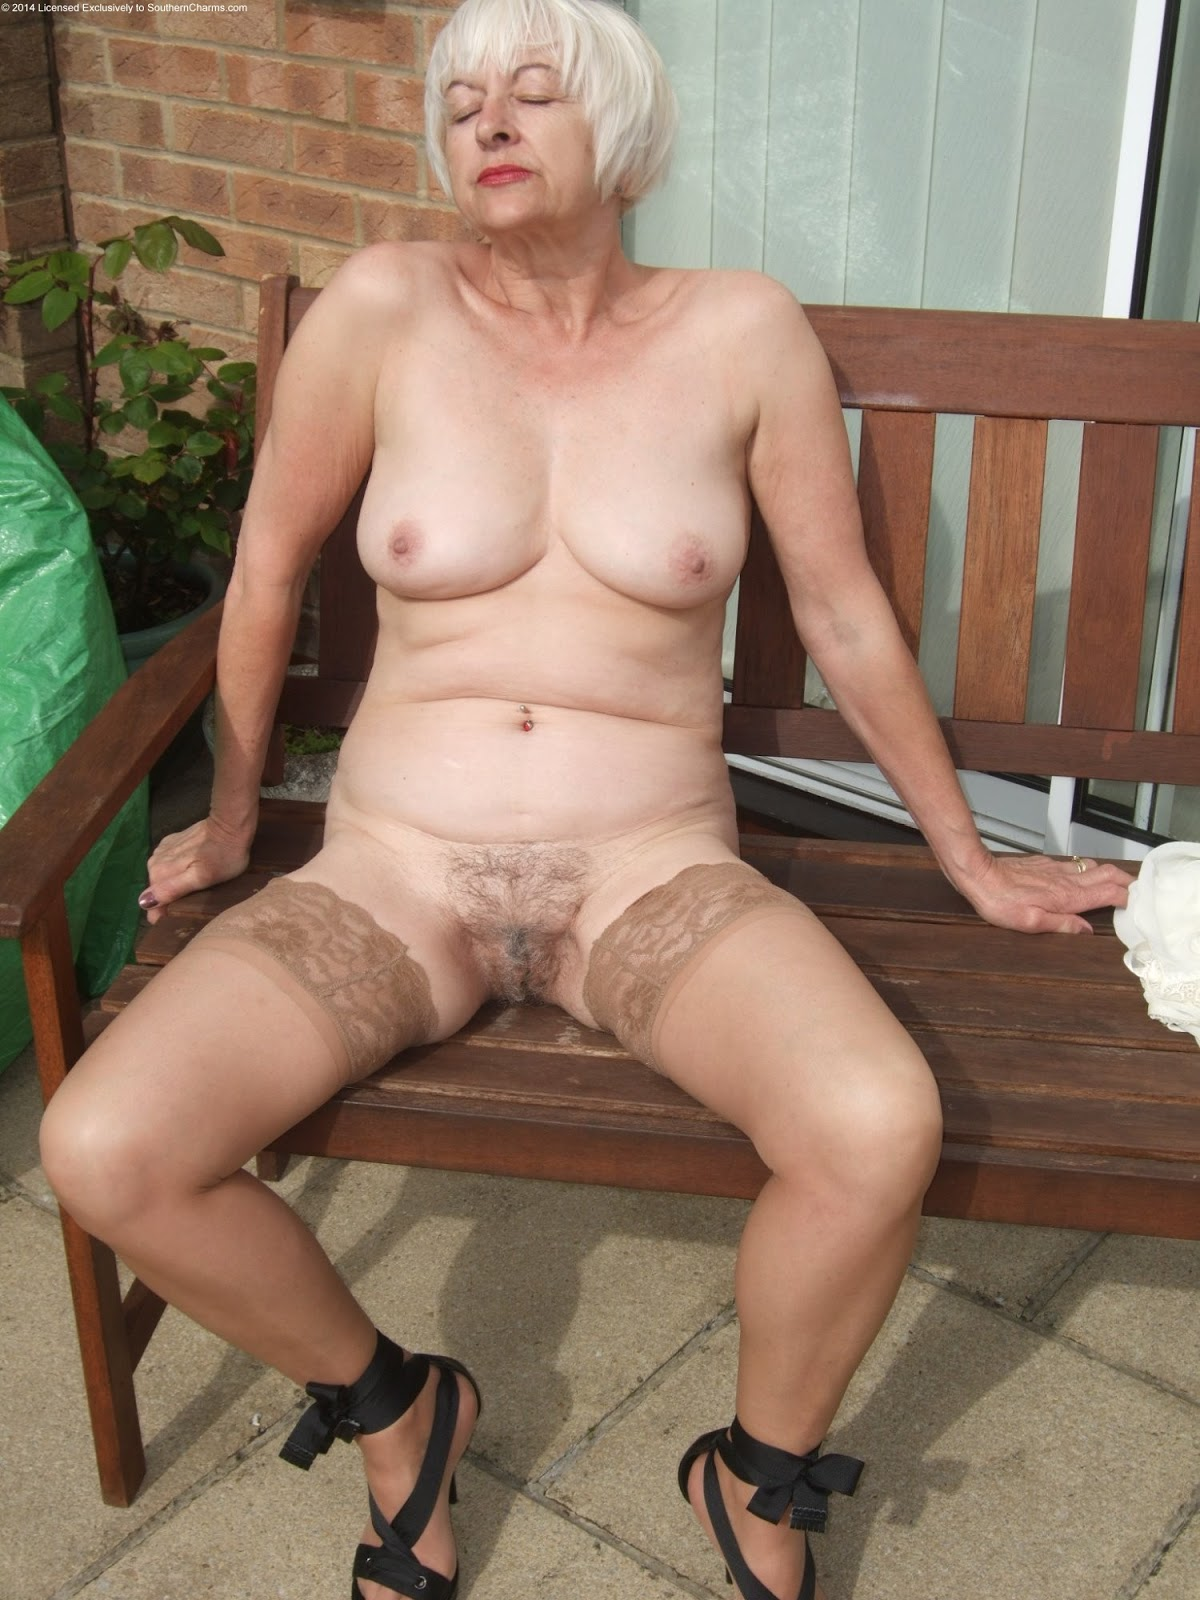 Archive Of Old Women Nude Old Lady Pictures-8114